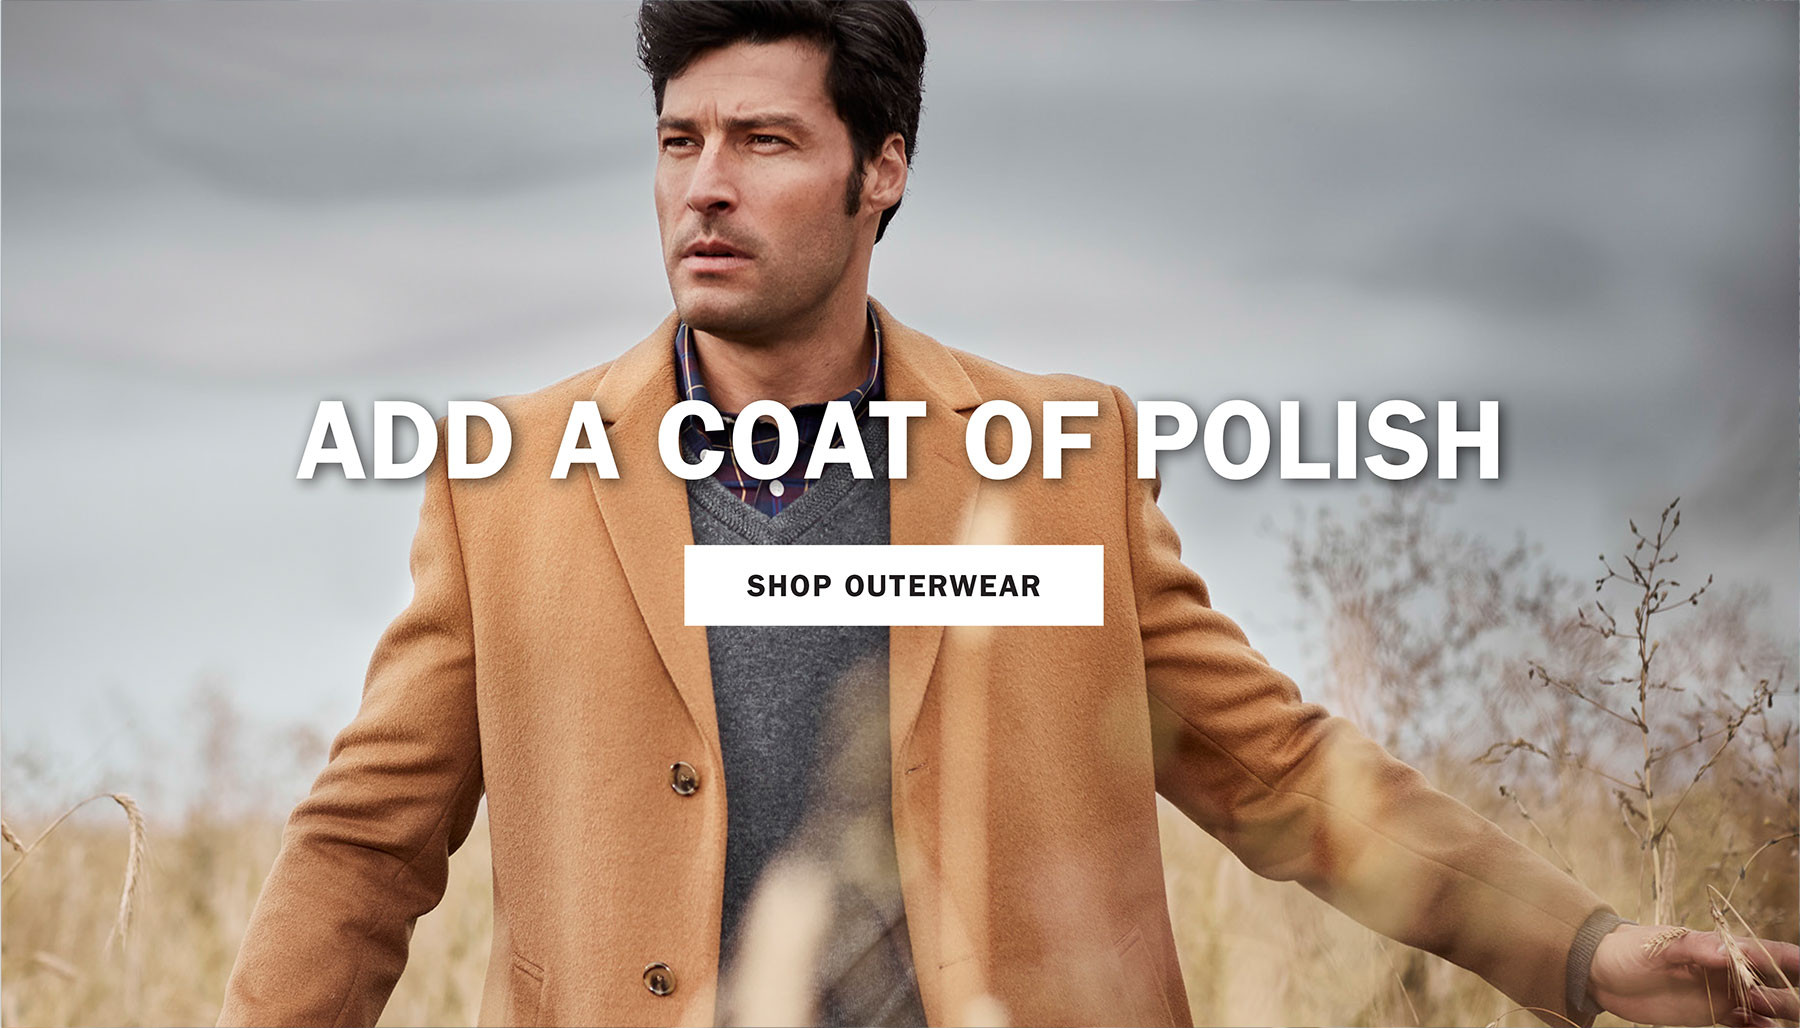 ADD A COAT OF POLISH | SHOP OUTERWEAR